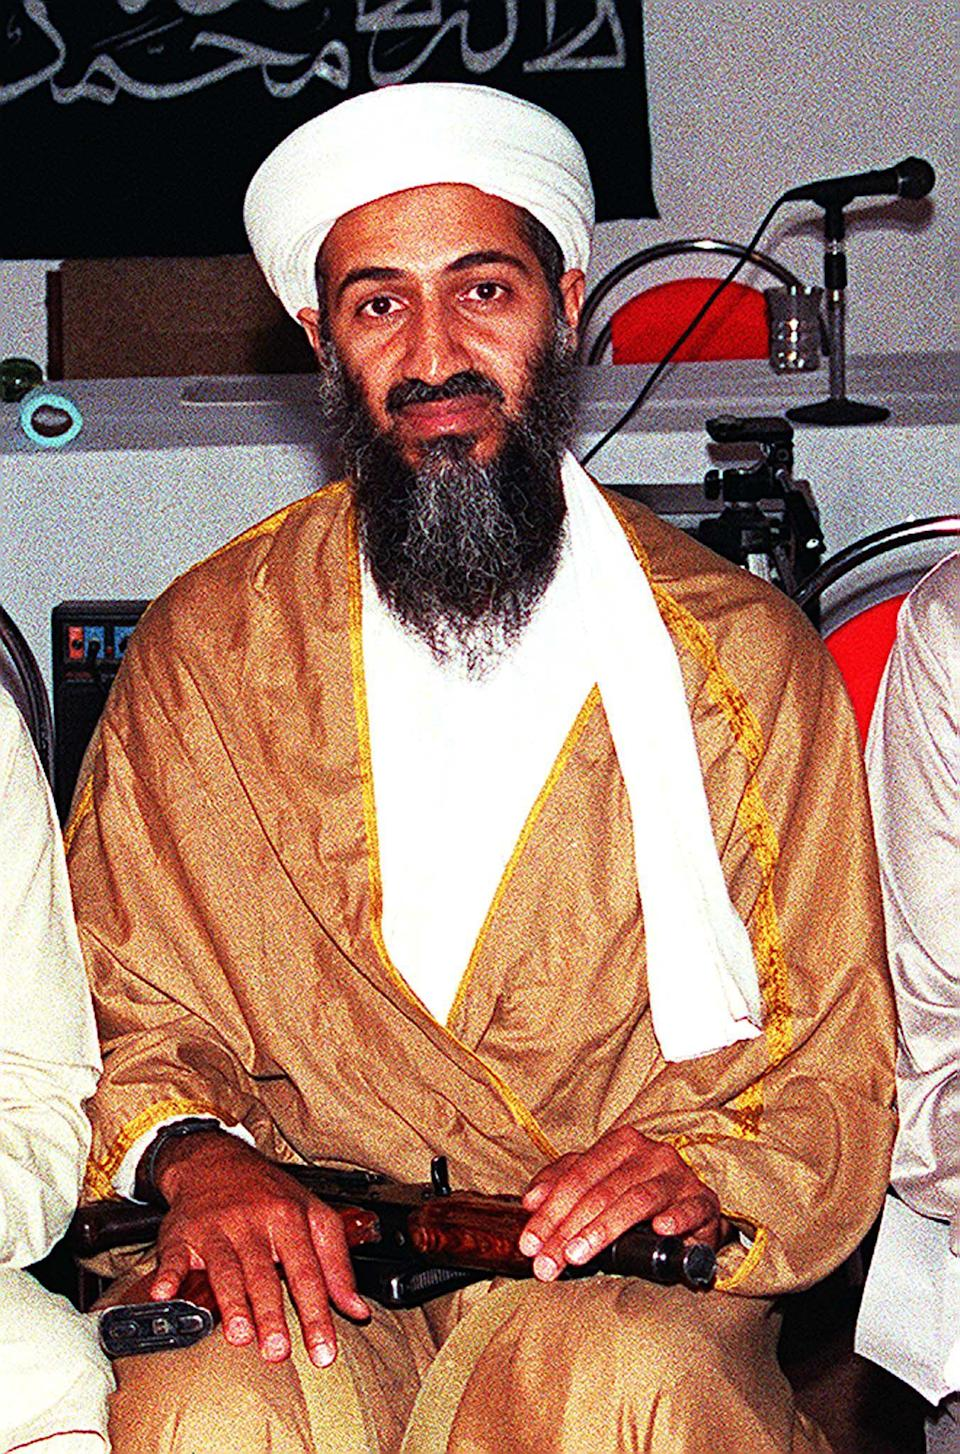 AFGHANISTAN:An undated file picture shows Osama Bin Laden attending a meeting with a Kalashnikov on his lap in an undisclosed place inside Afghanistan. Bin Laden is reported to have been funding the Abu Sayyaf, who are currently holding over a dozen hostages in the southern Philippine island of Jolo, through a Islamic charity, the International Islamic Relief Organisation (IIRO) which he set up in 1992 with his brother-in-law Mohammad Jamal Khalifa as a front for funding extremist groups. Bin Laden, a wealthy Saudi dissident living in Afghanistan, is wanted by the United States for masterminding a terrorist attack on tow US embassies in east Africa in 1998 which killed 224 people. AFP PHOTO/FILES (Photo credit should read AFP via Getty Images)